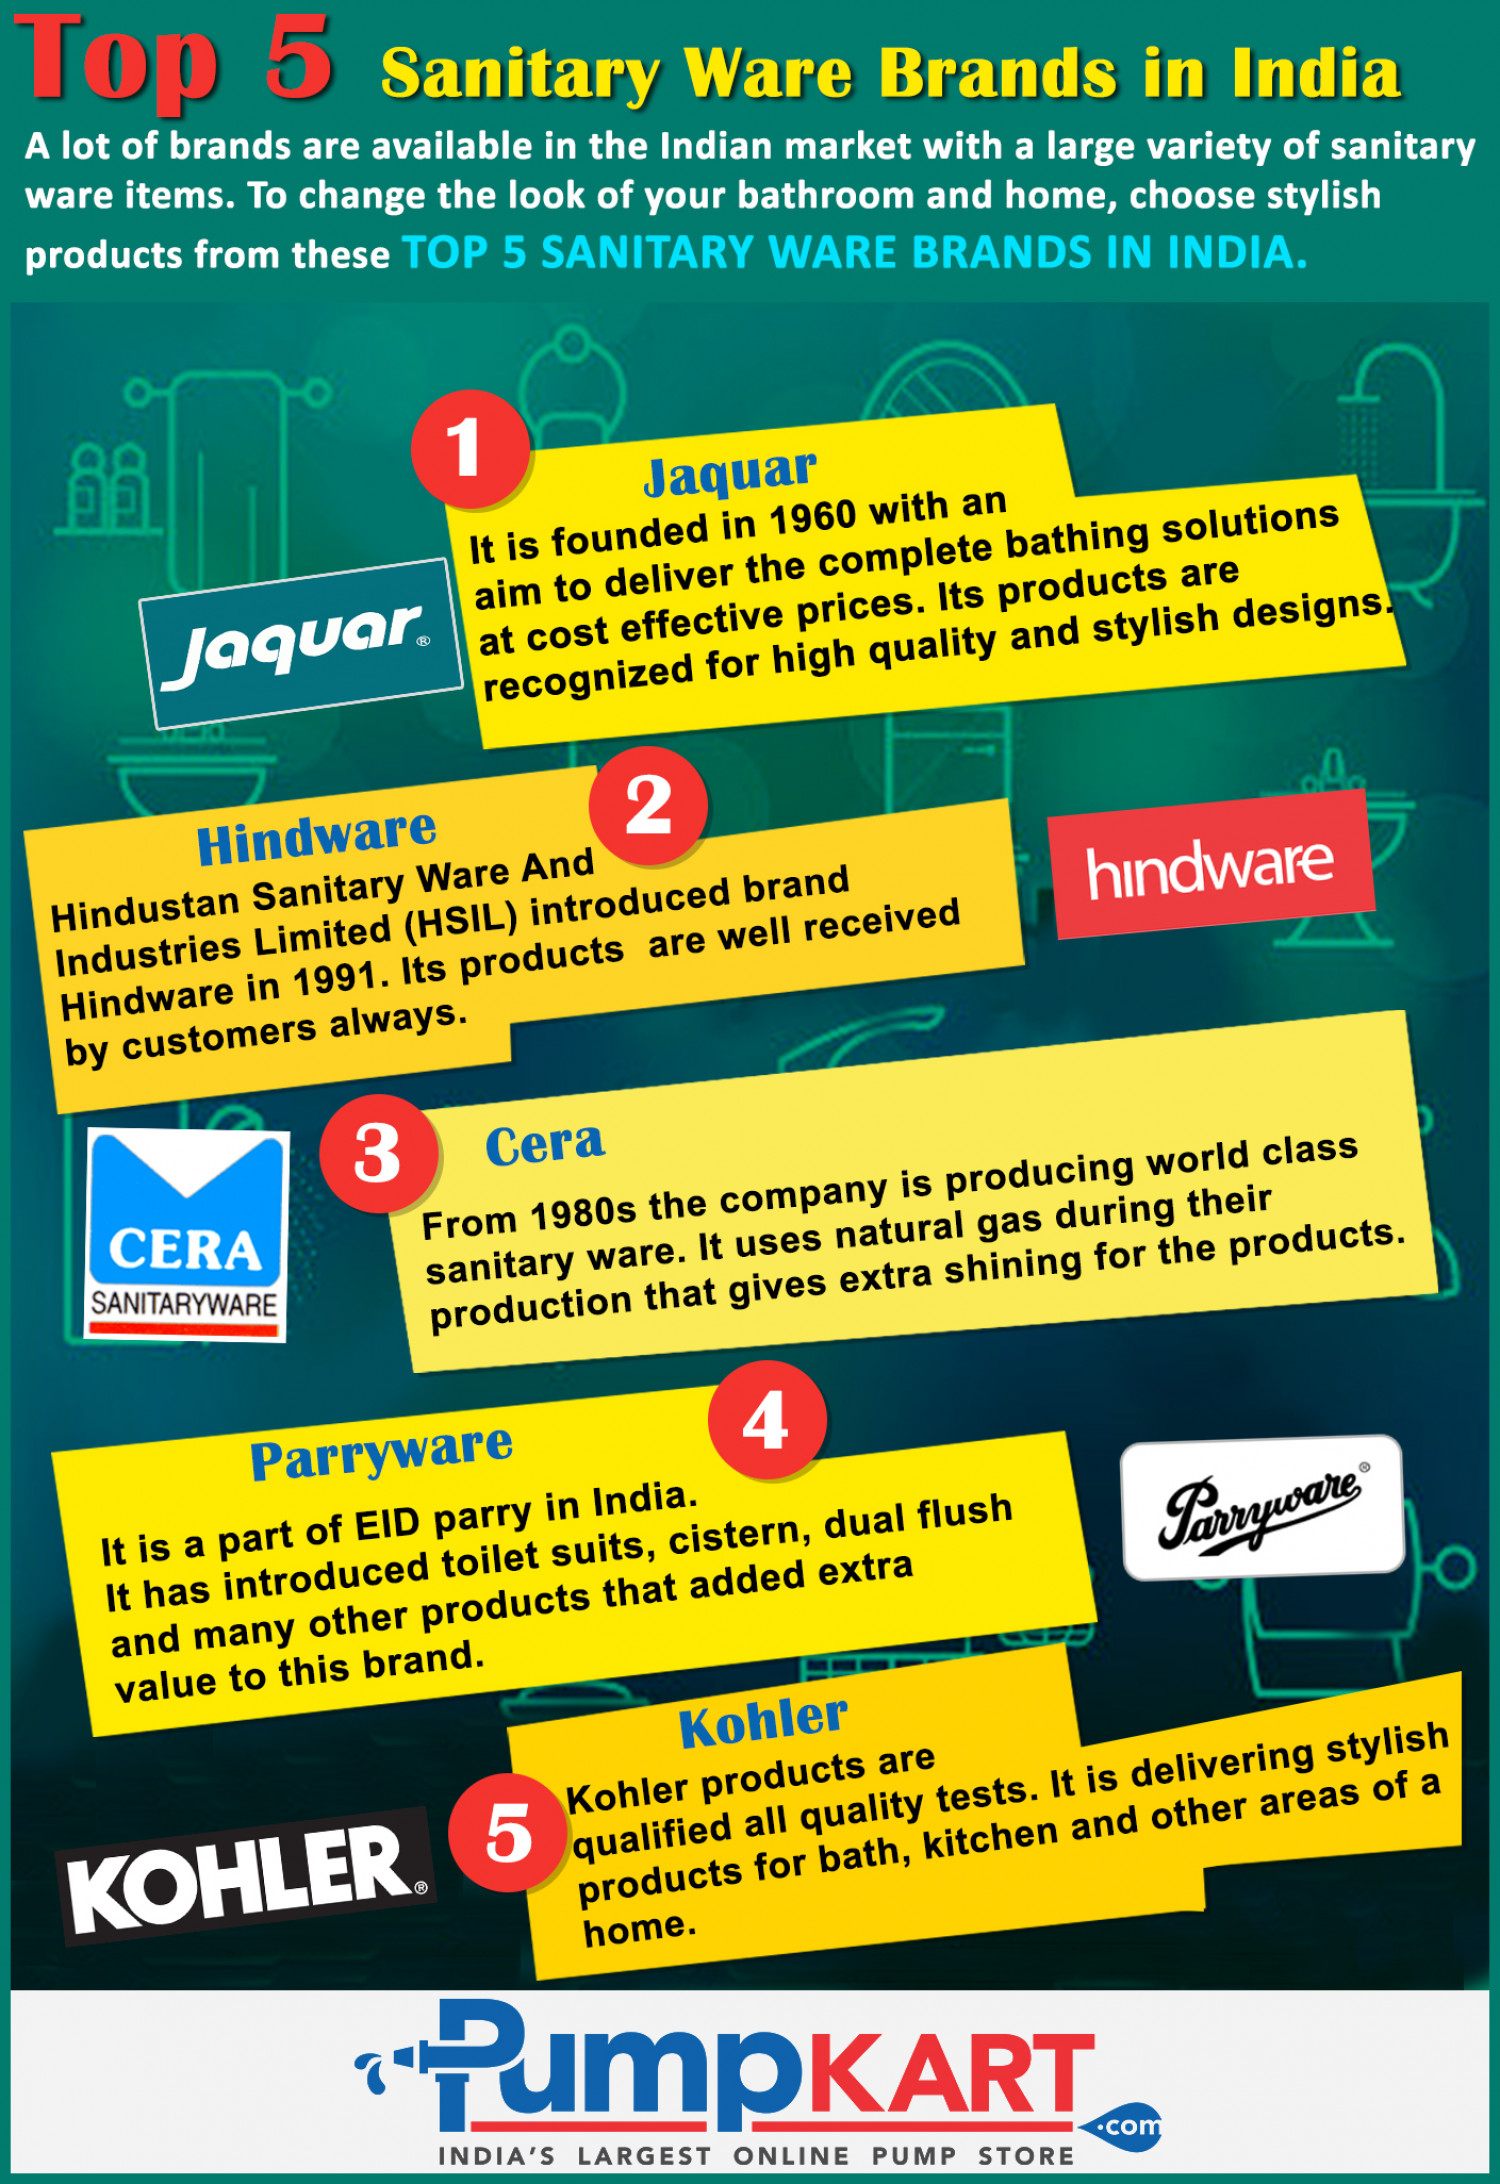 Top 5 Sanitary Ware Brands in India | Visual.ly